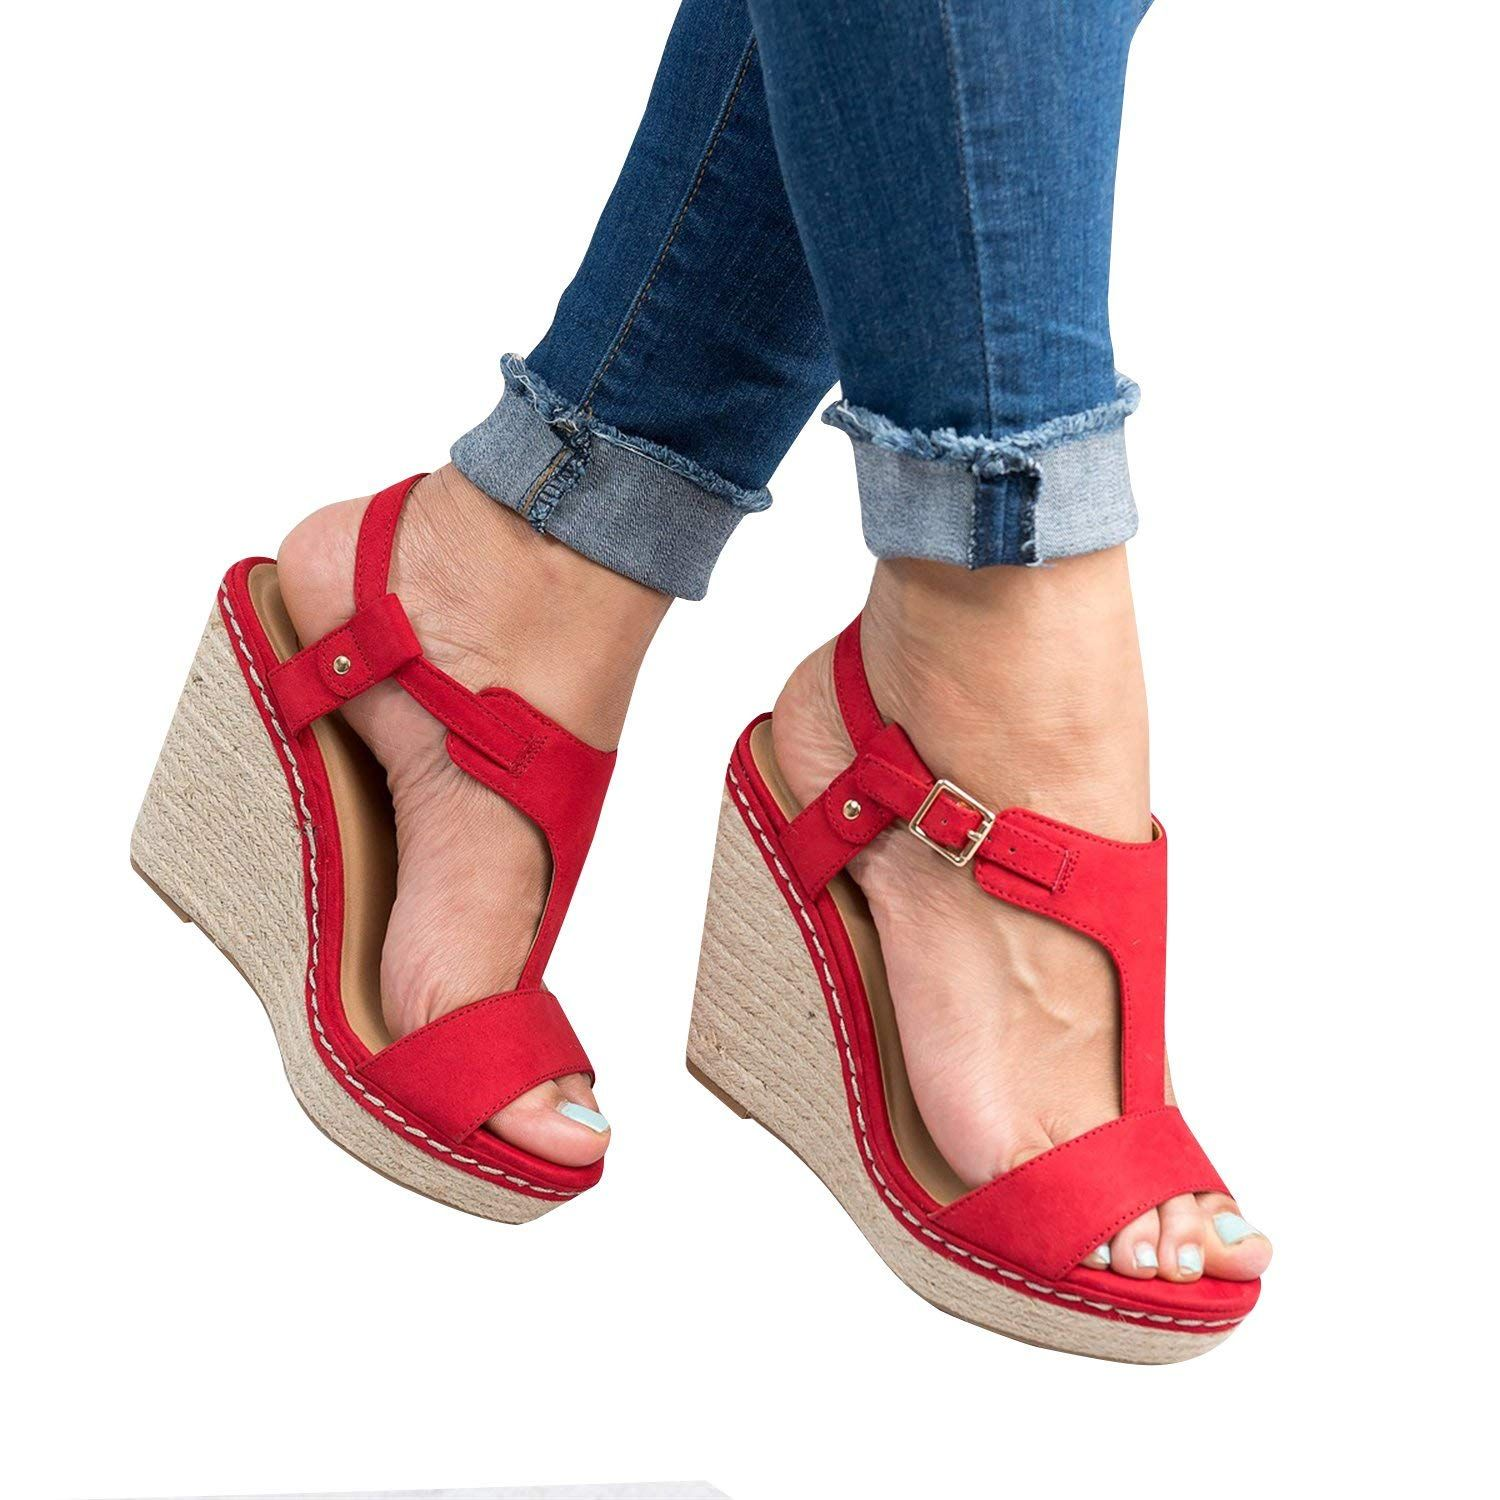 6ef48b0f643 Syktkmx Womens Strappy Espadrille Platform Wedge Sandals Open Toe Ankle  Wrap Mid Heel Summer Dress Sandals Wear with dresses ...